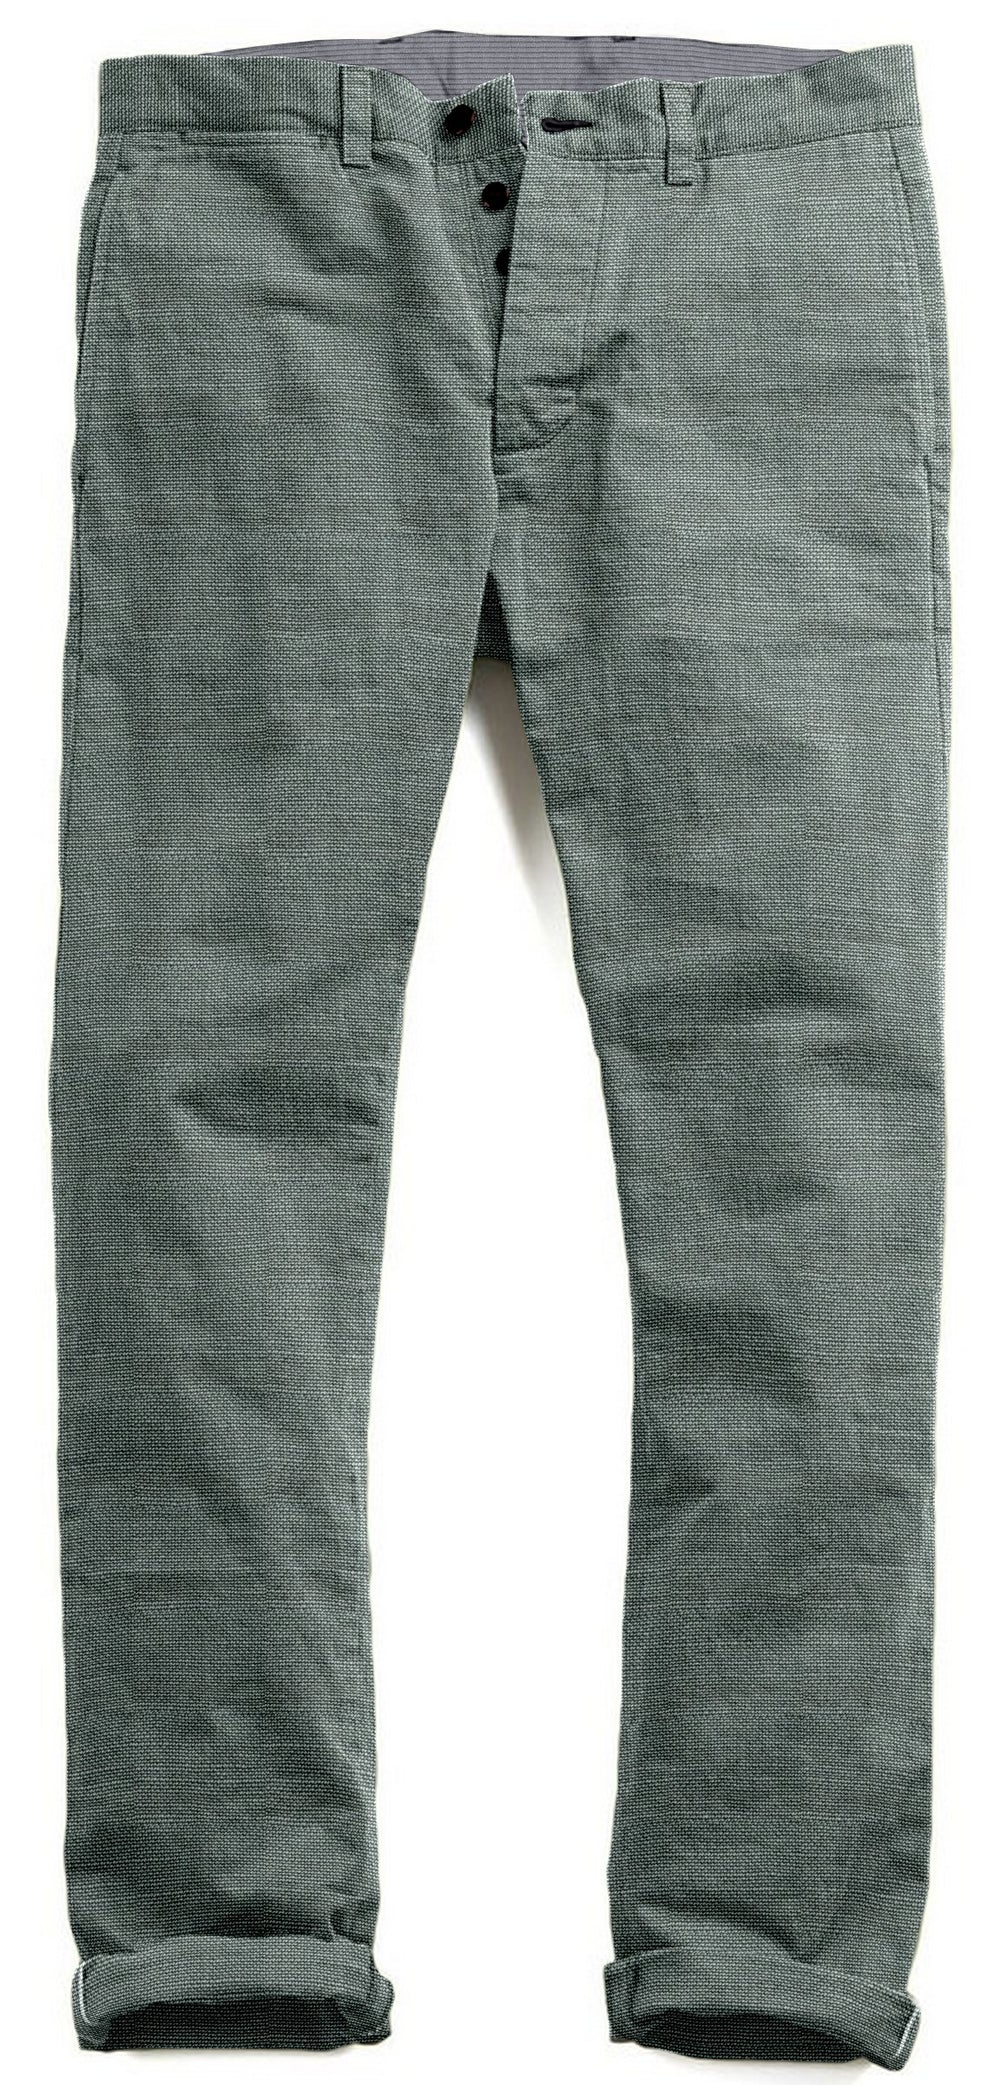 Linen Cotton Canvas: Greyish Green